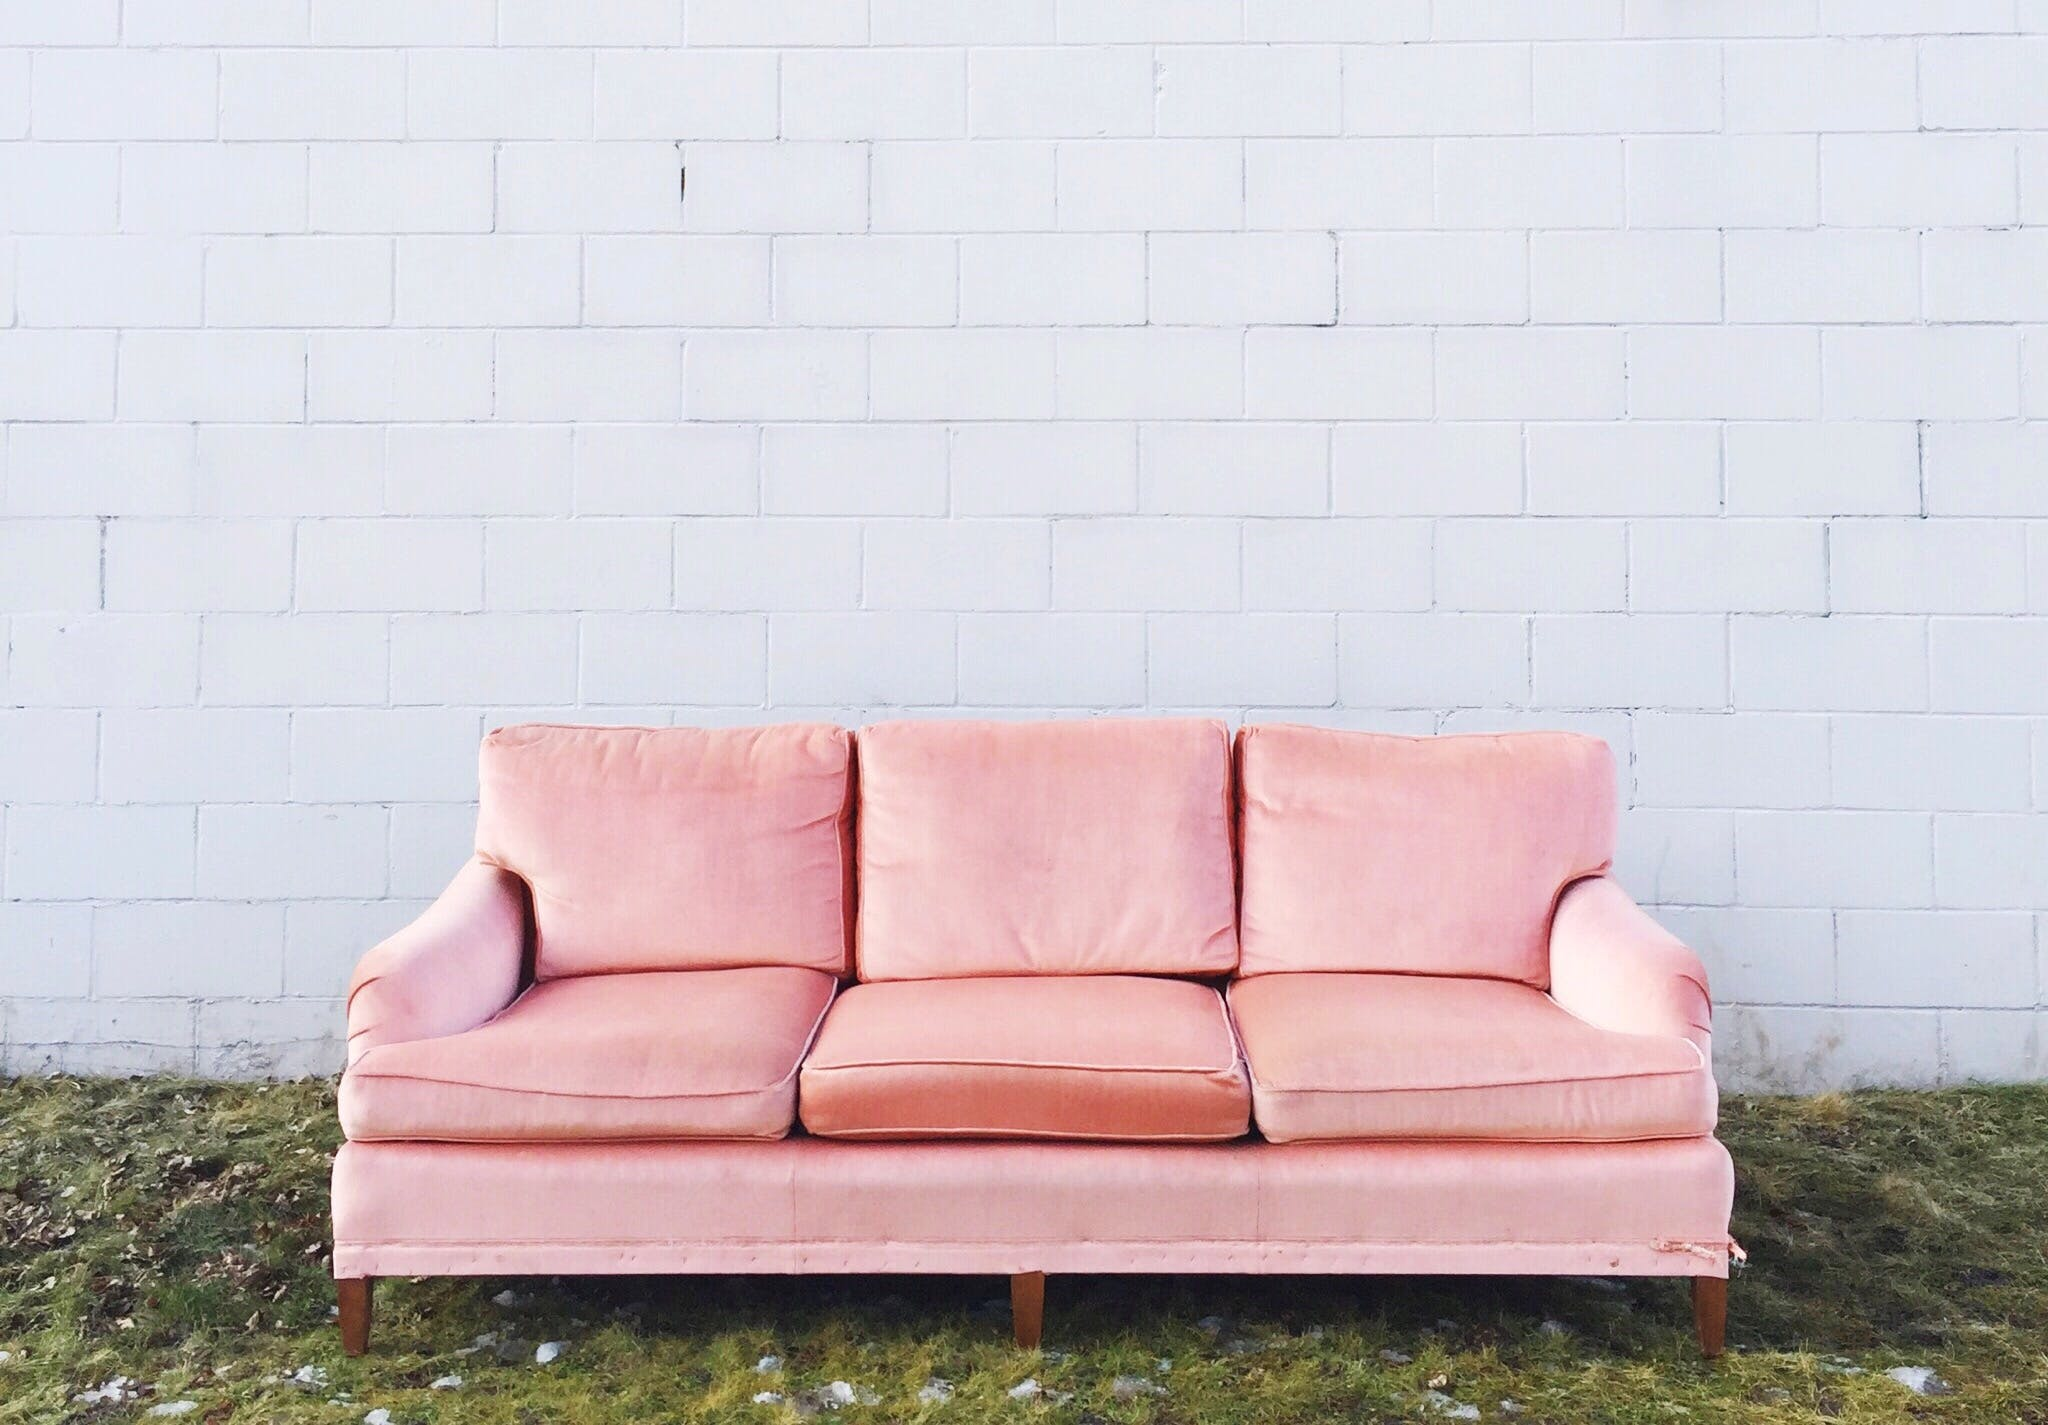 The Best Ways To Donate Or Sell Your Stuff In Dallas Purewow